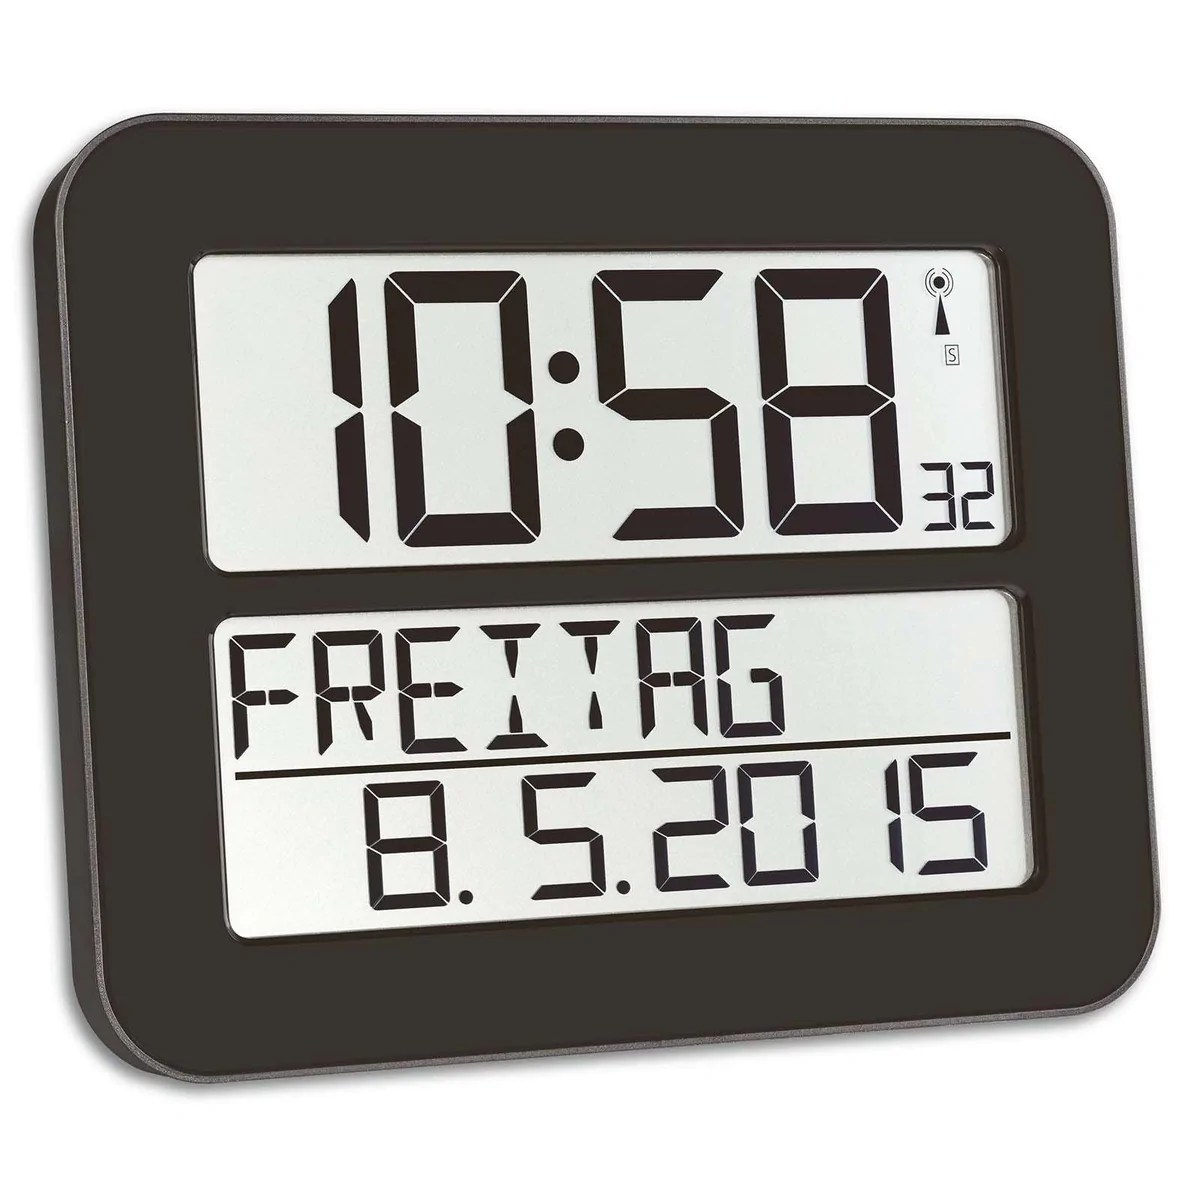 Digital Clock For Sale Buy Tfa Day Date Digital Alarm Wall Or Table Clock Black